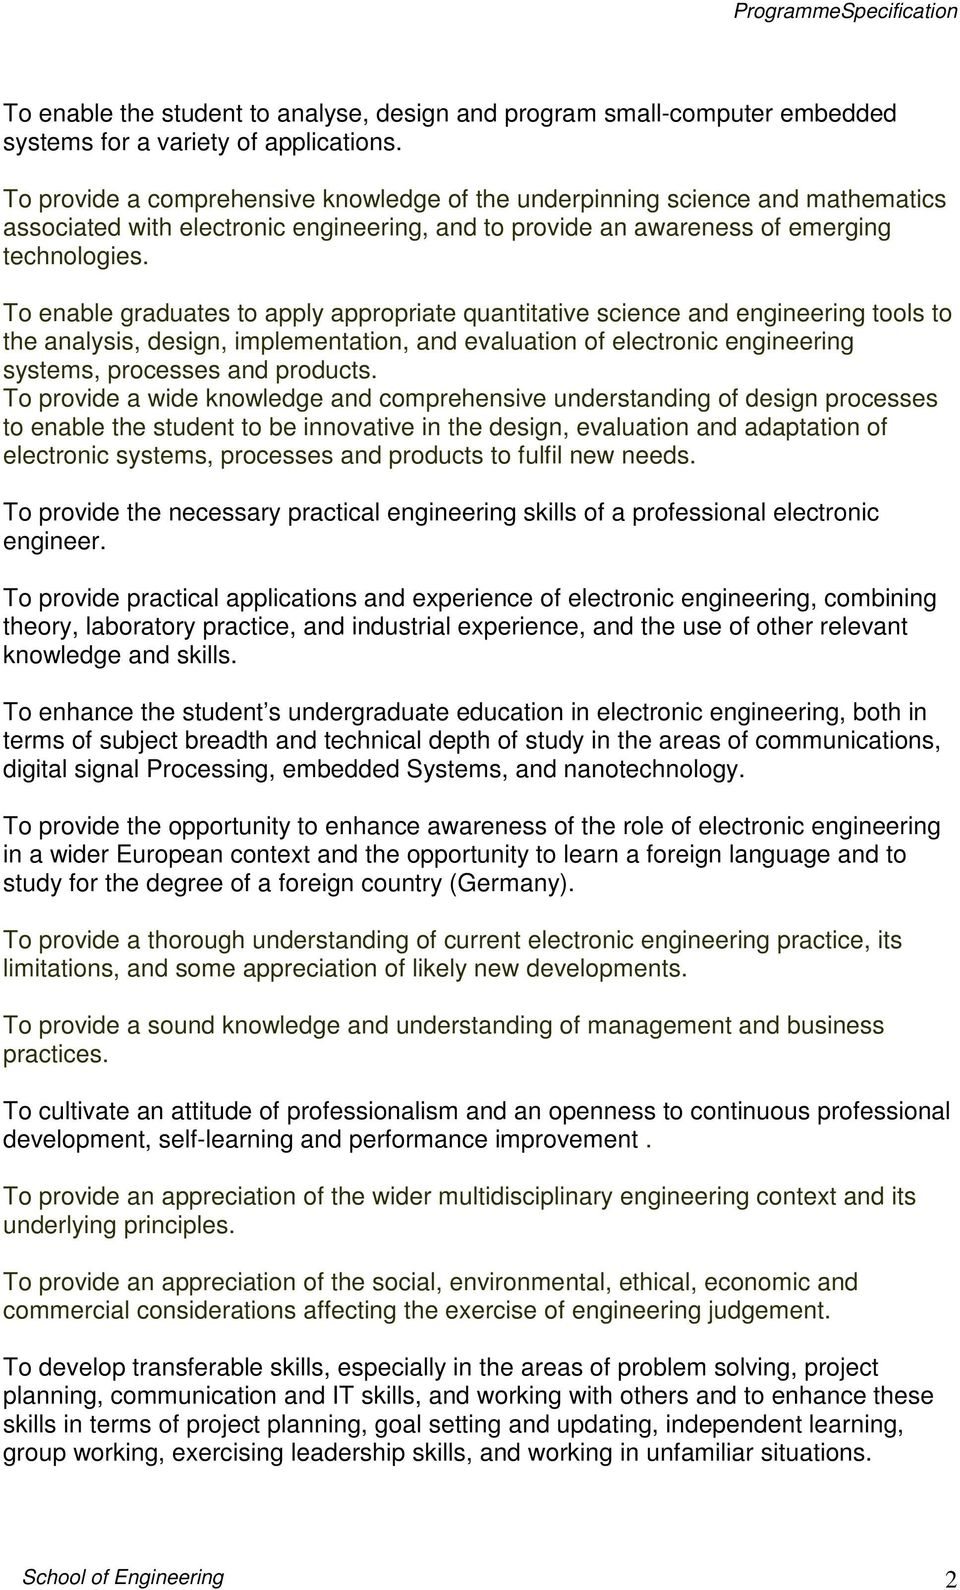 Programme Specification Meng Electronic Engineering Project For Technical Study Digital To Enable Graduates Apply Appropriate Quantitative Science And Tools The Analysis Design